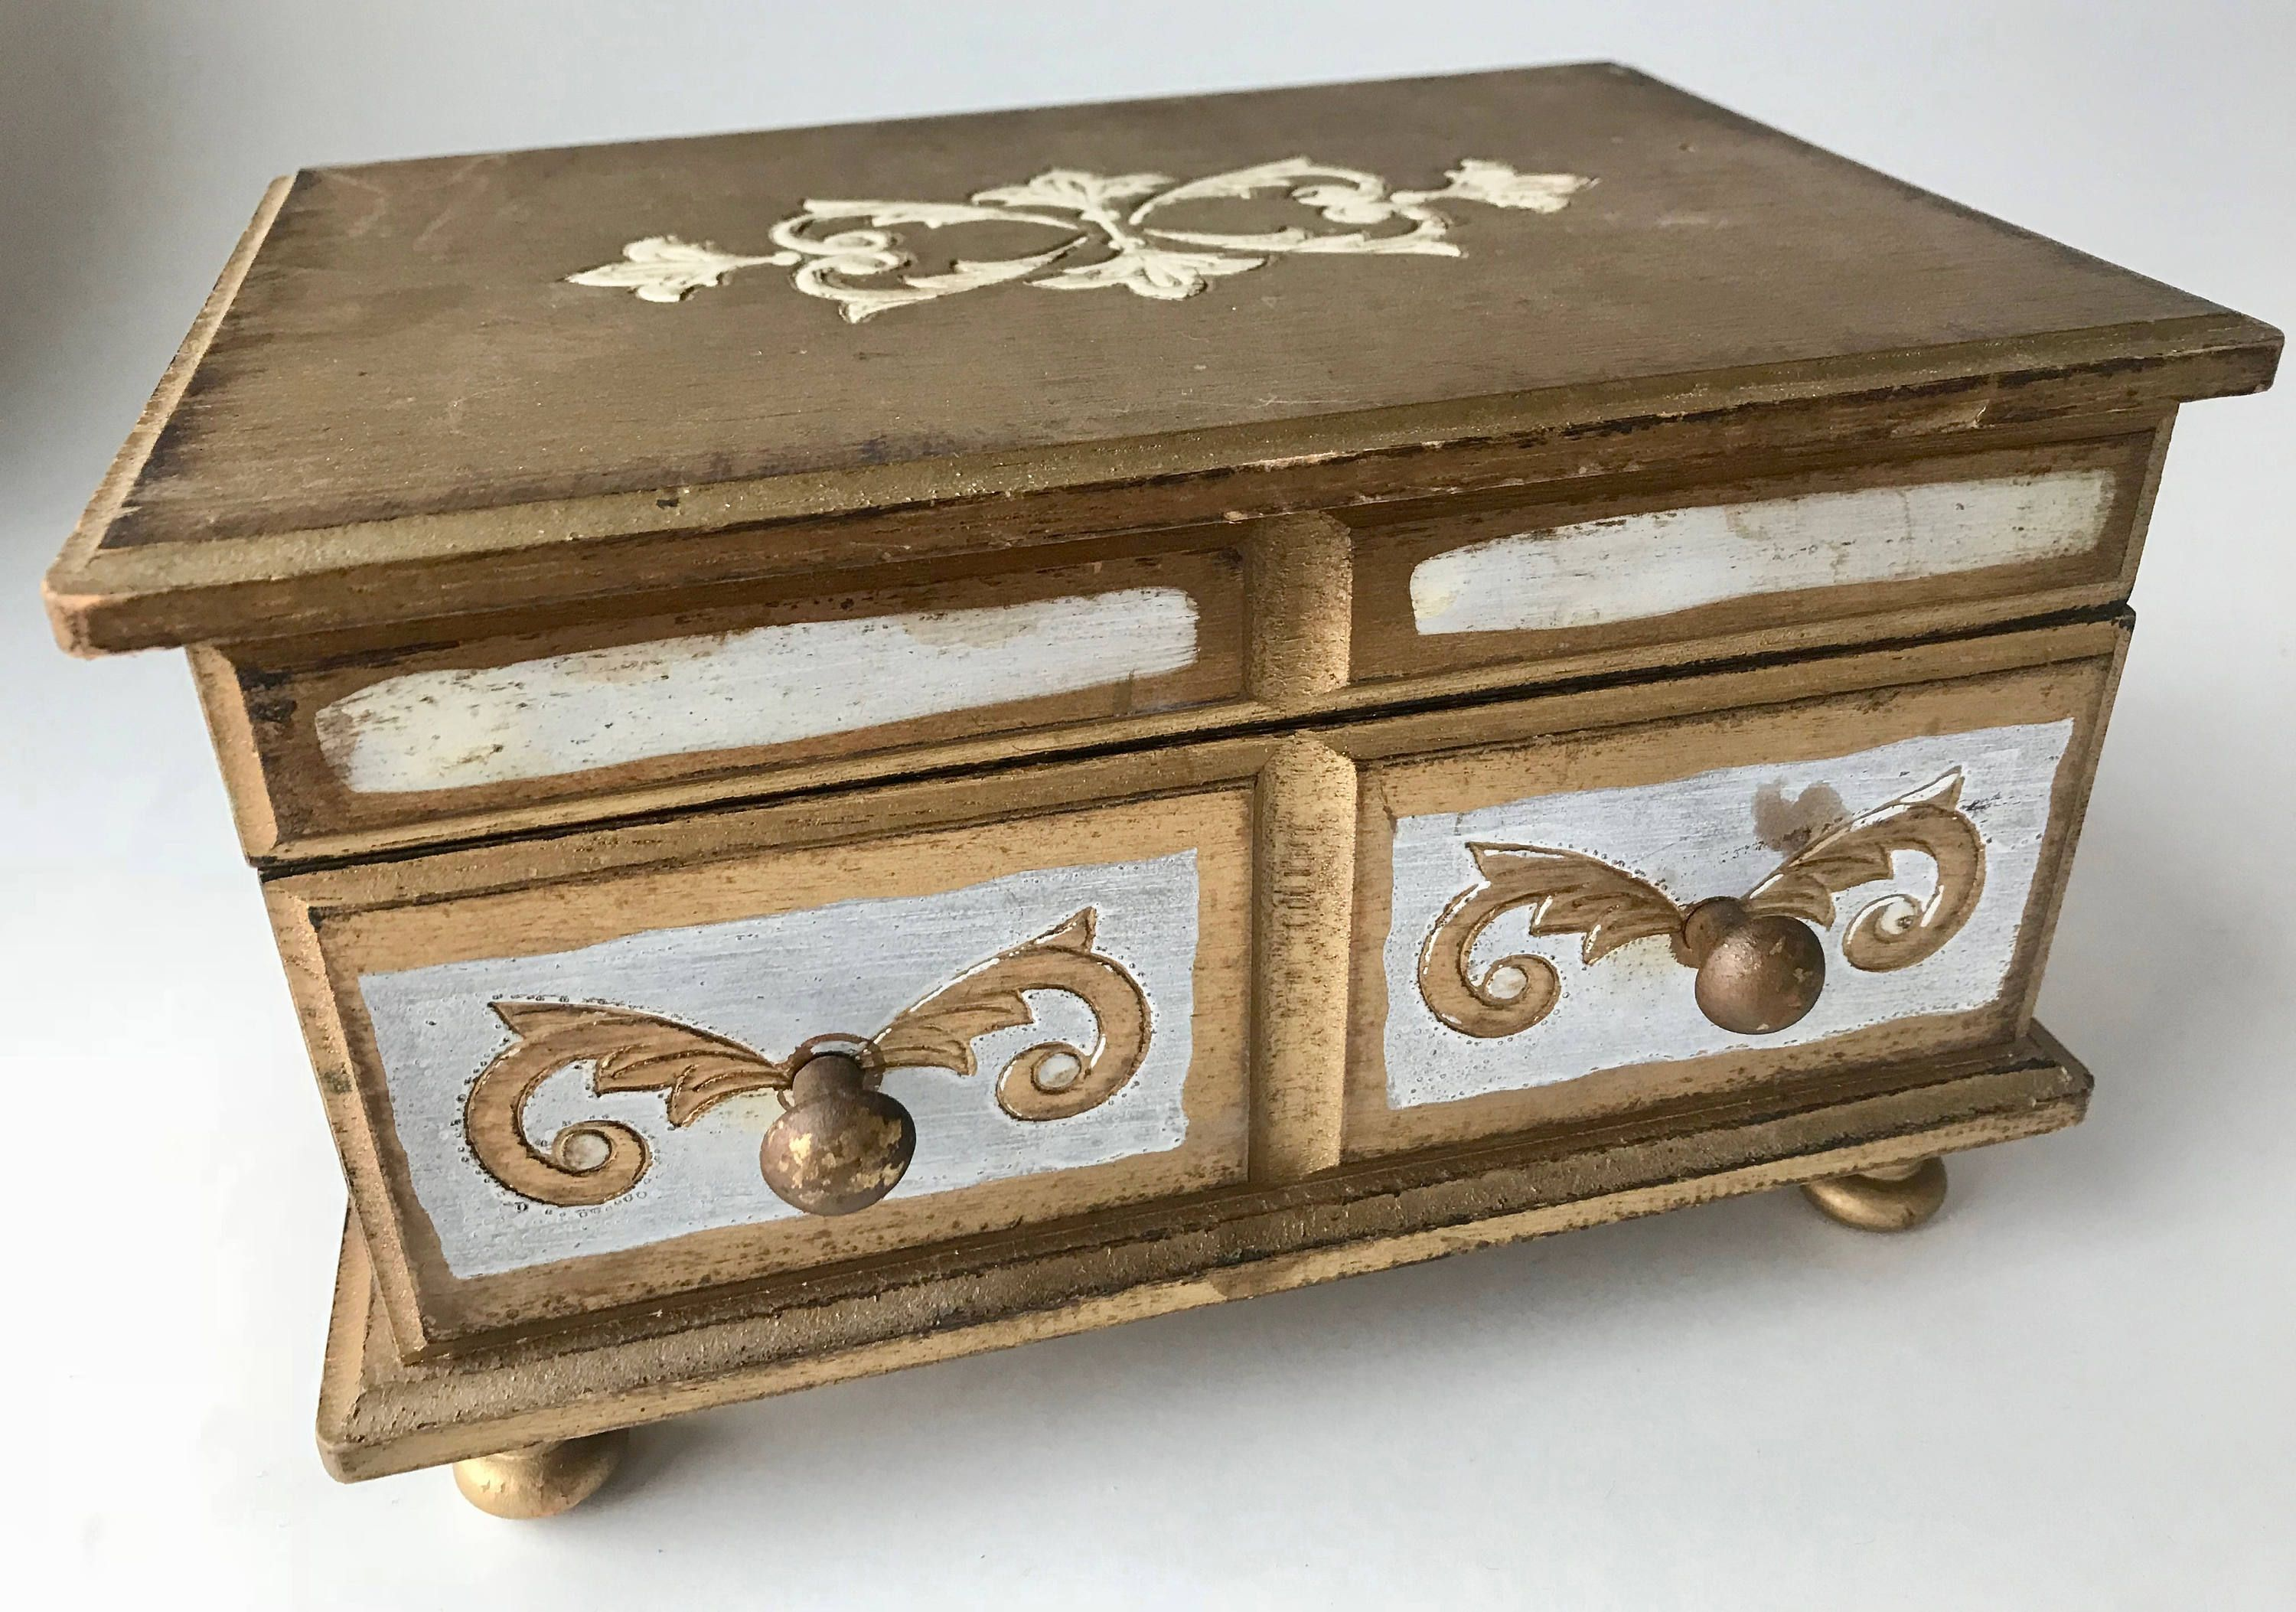 Vintage Japan Music Jewelry Box Footed Solid Wood Distressed Gold